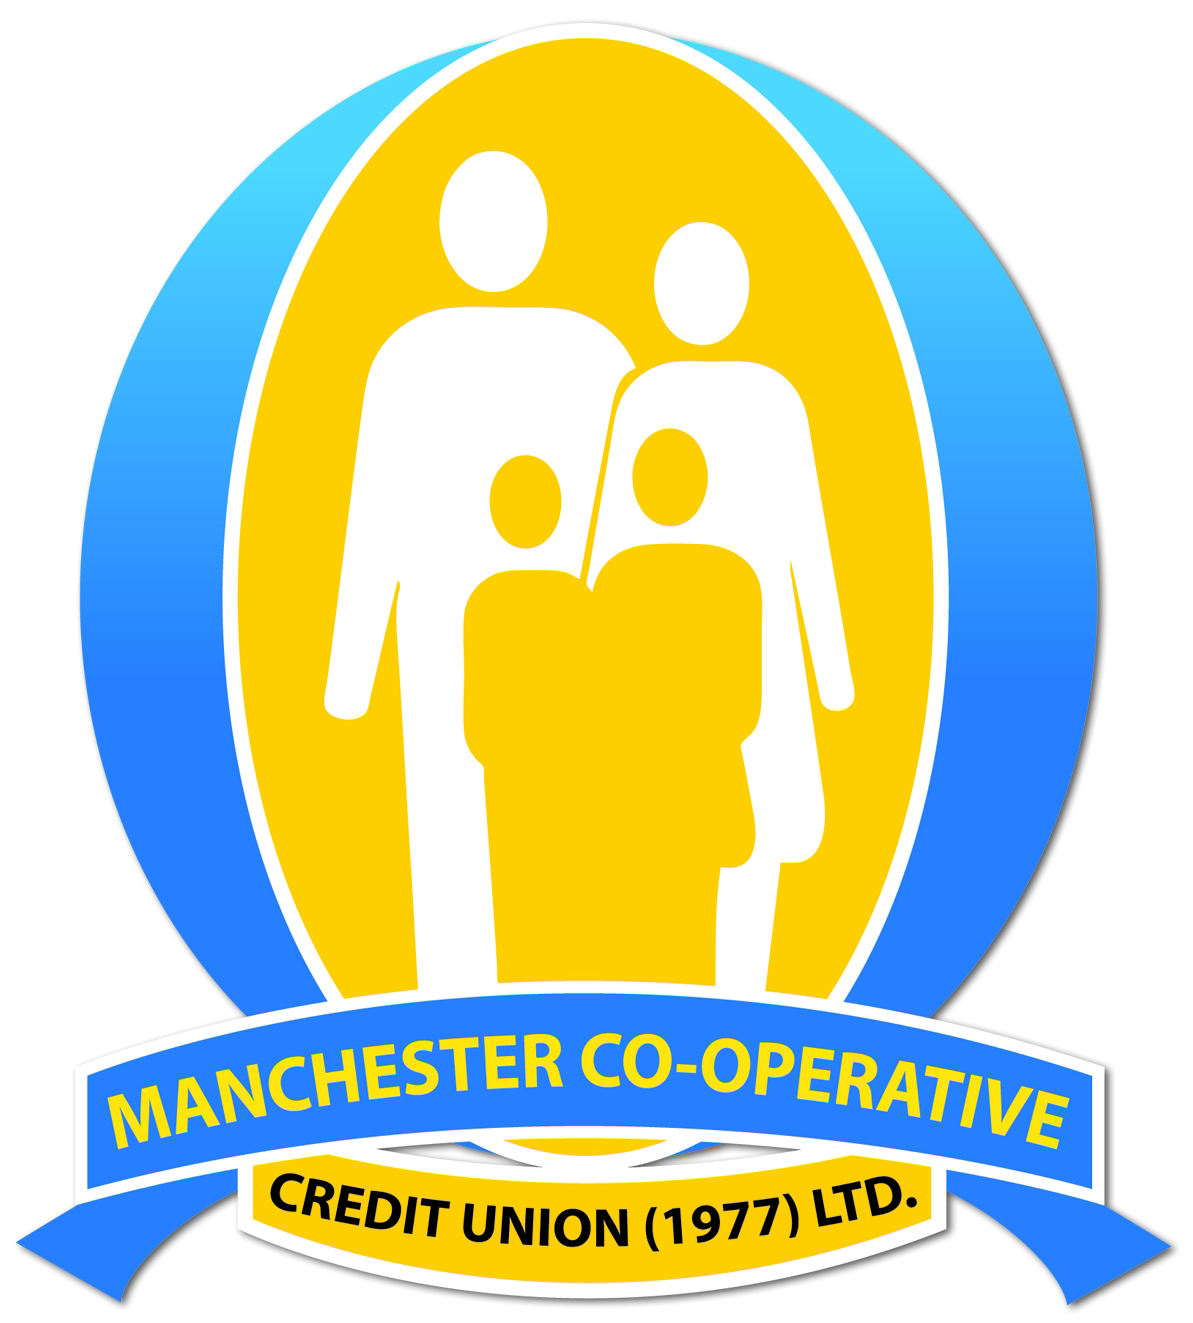 Manchester Co-operative Credit Union (1977) Limited